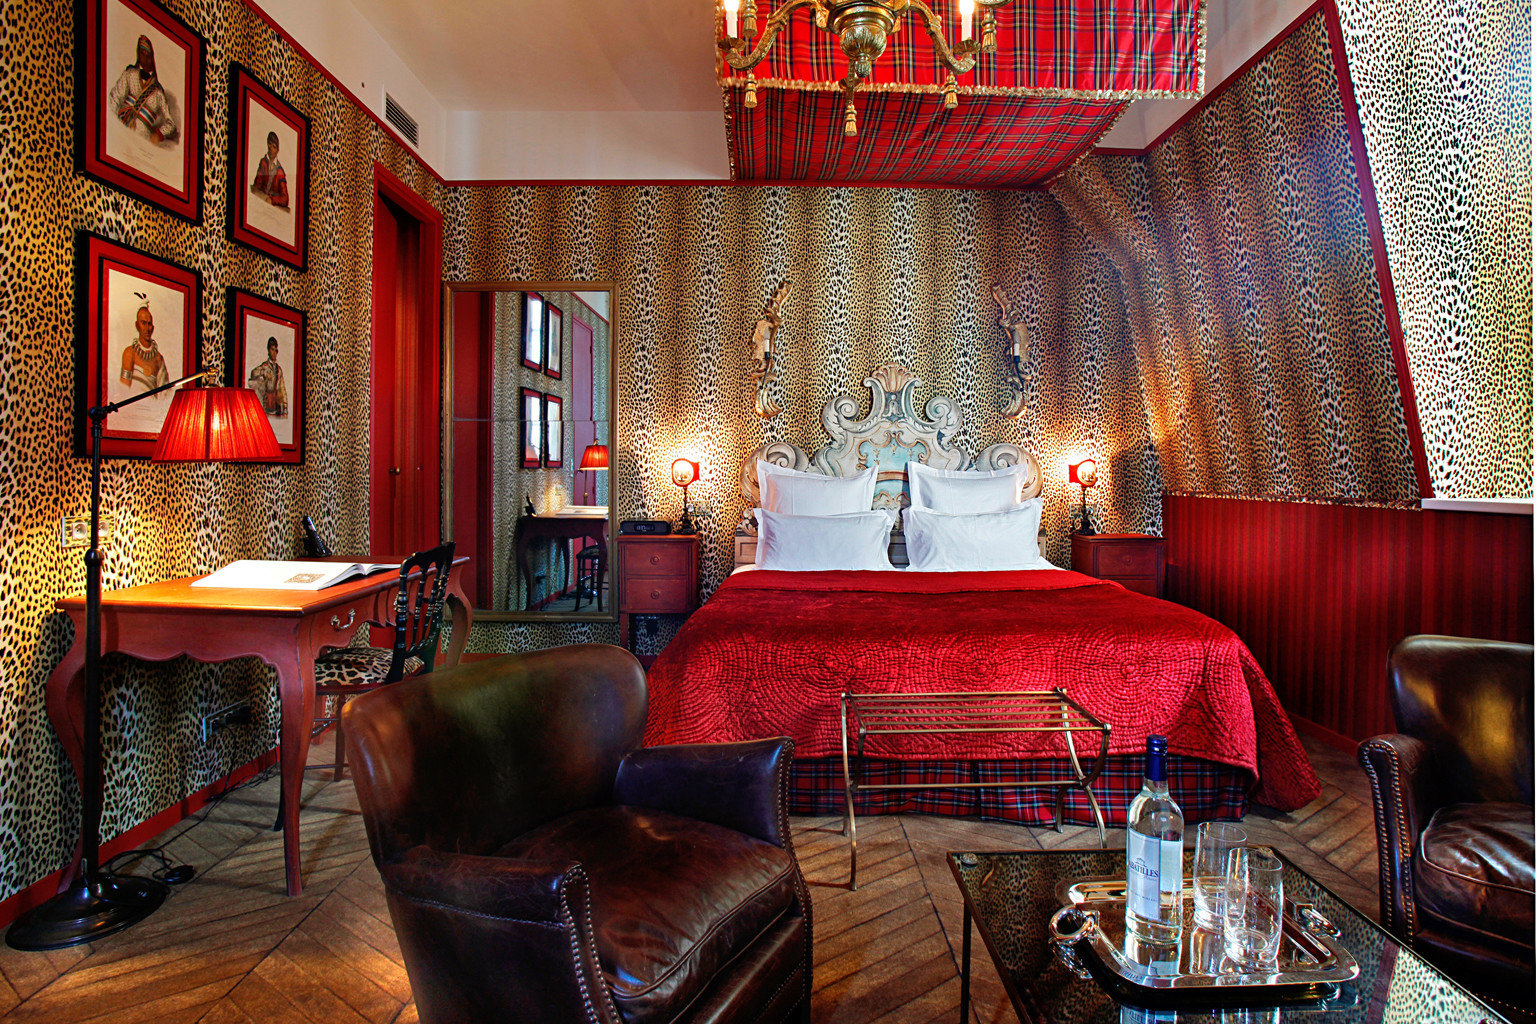 Palm Springs Hotels >> 7 Most Romantic Hotels in Paris | Jetsetter